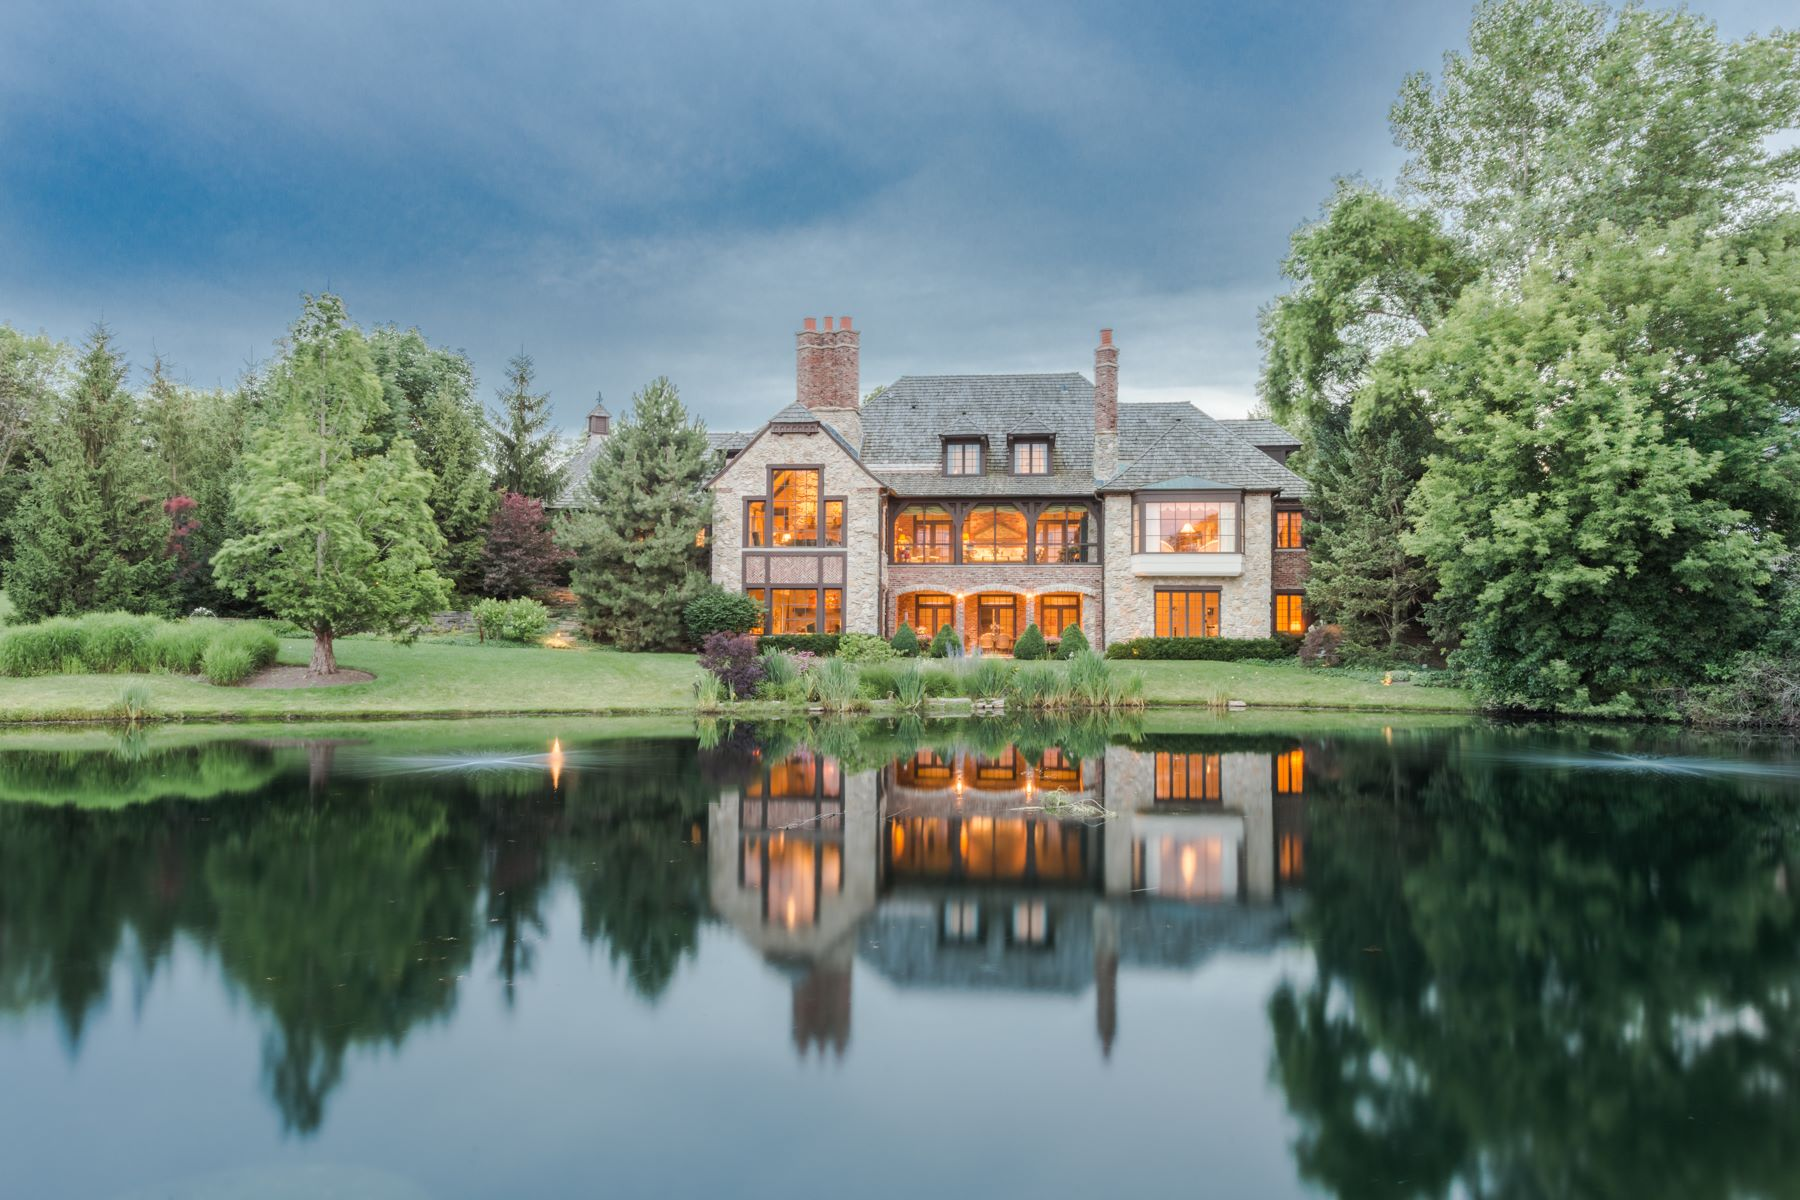 Maison unifamiliale pour l Vente à 12 Kensington Drive Wynstone North Barrington, Illinois, 60010 États-Unis